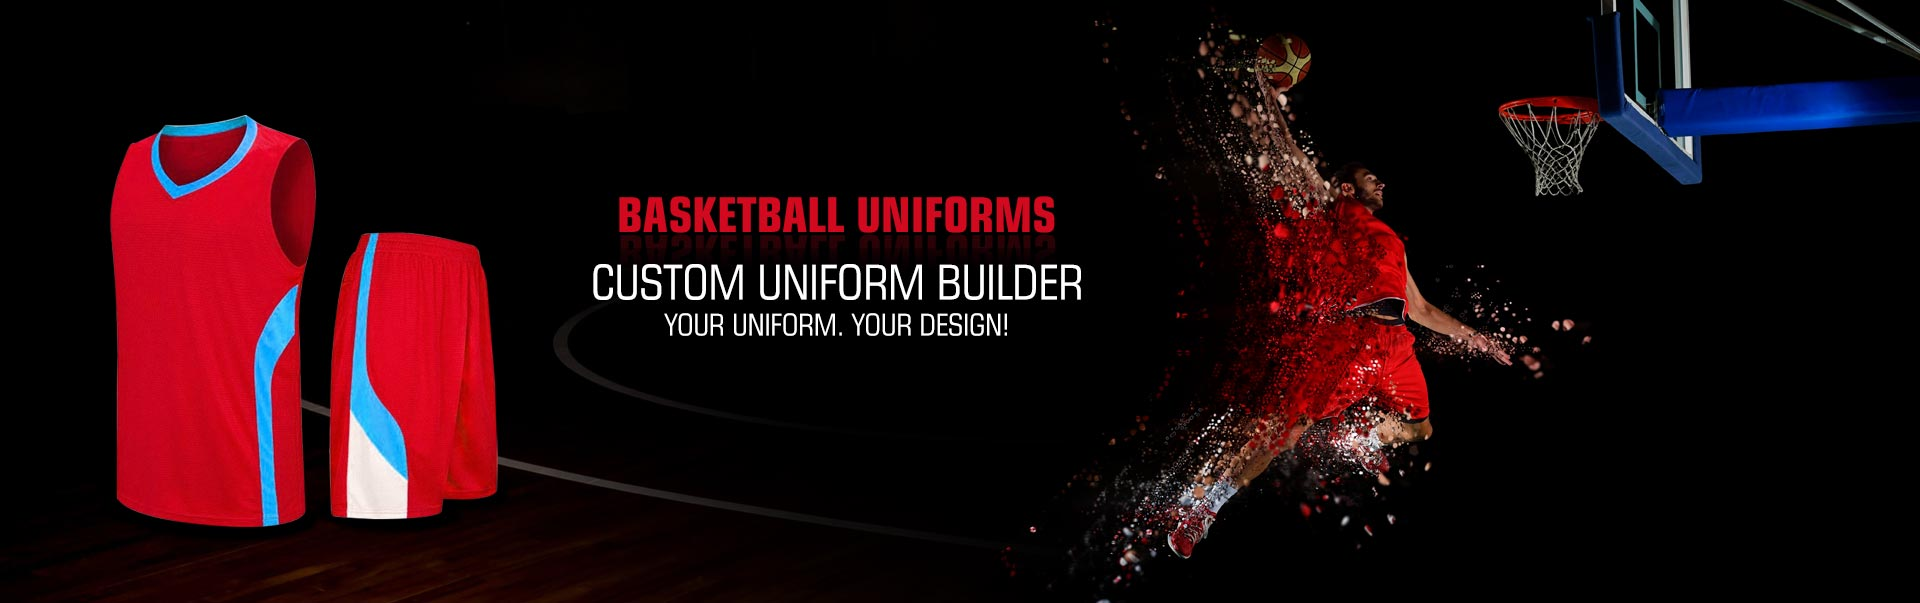 Basketball Uniforms Wholesaler, Suppliers in Bendigo